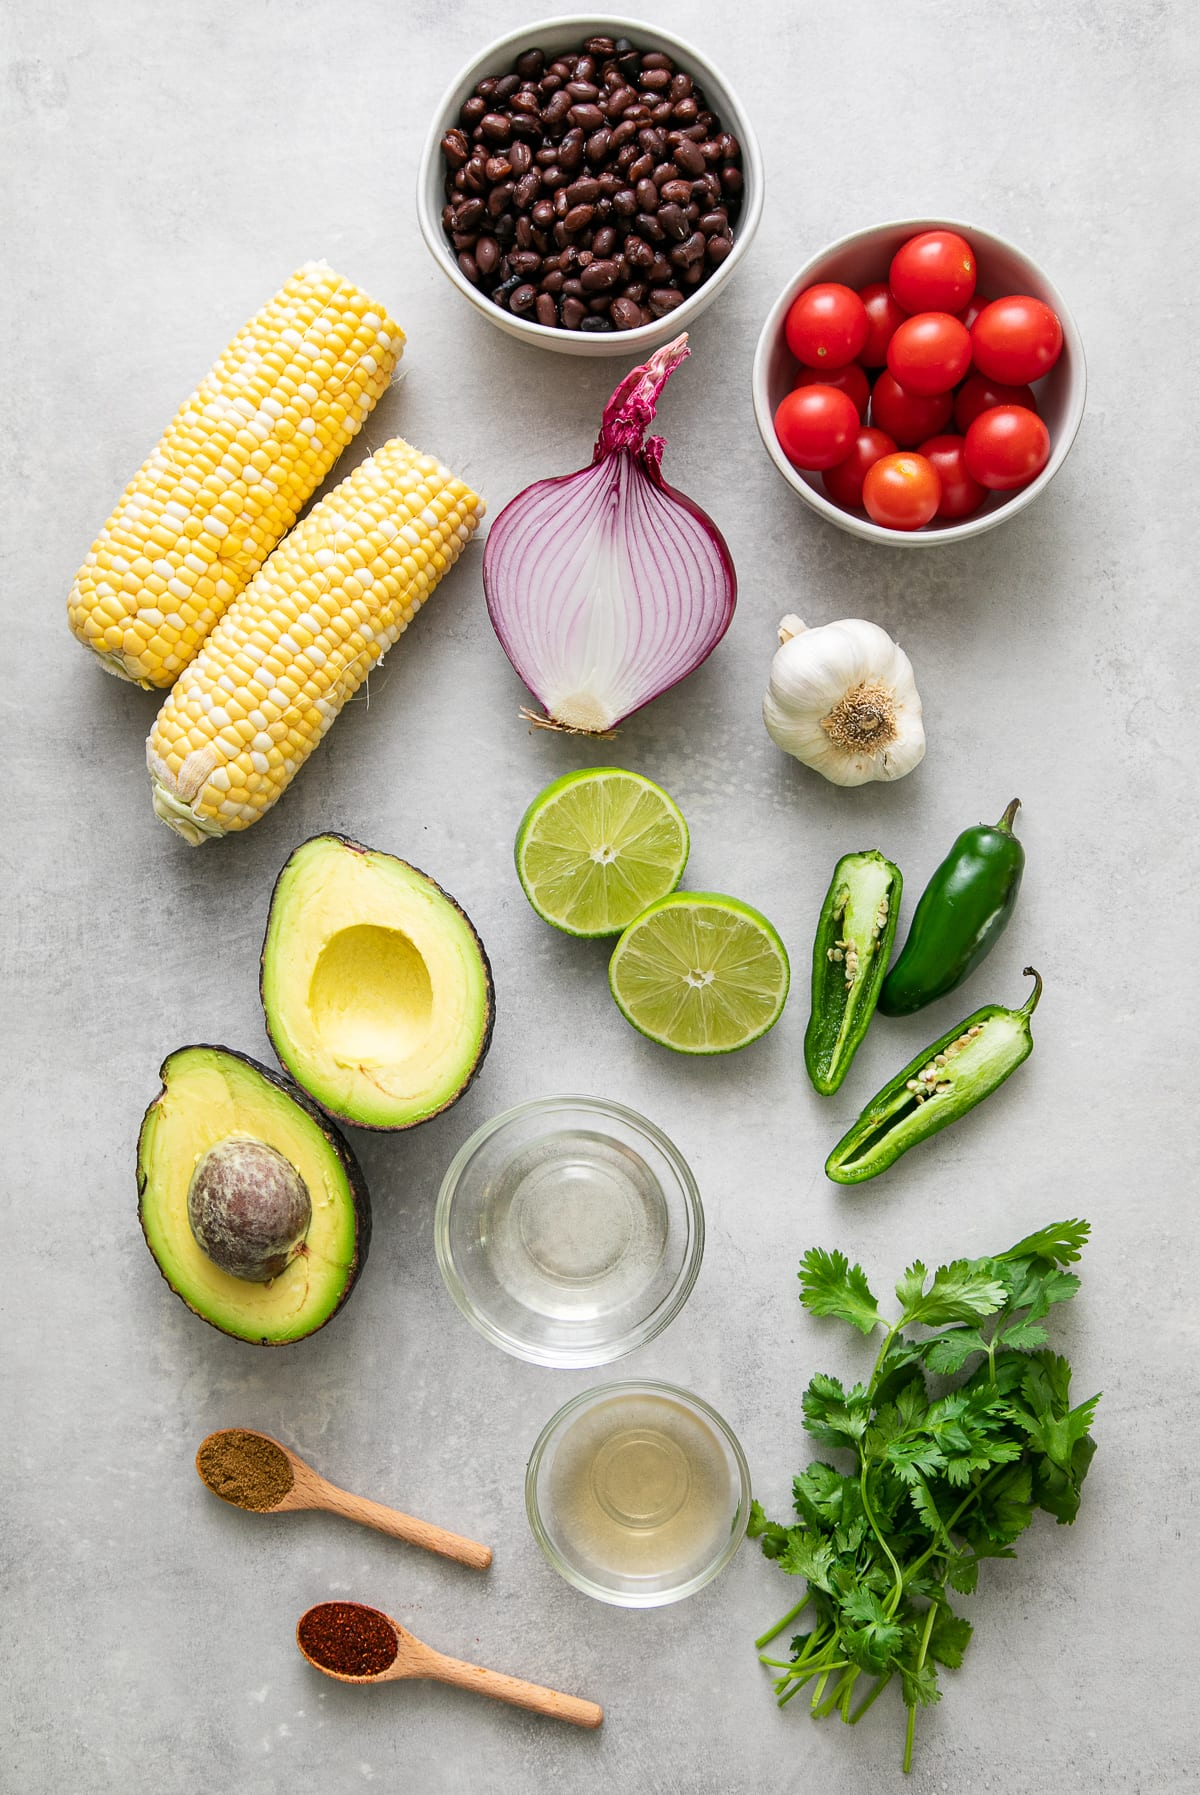 top down view of ingredients used to make black bean and corn salad recipe.